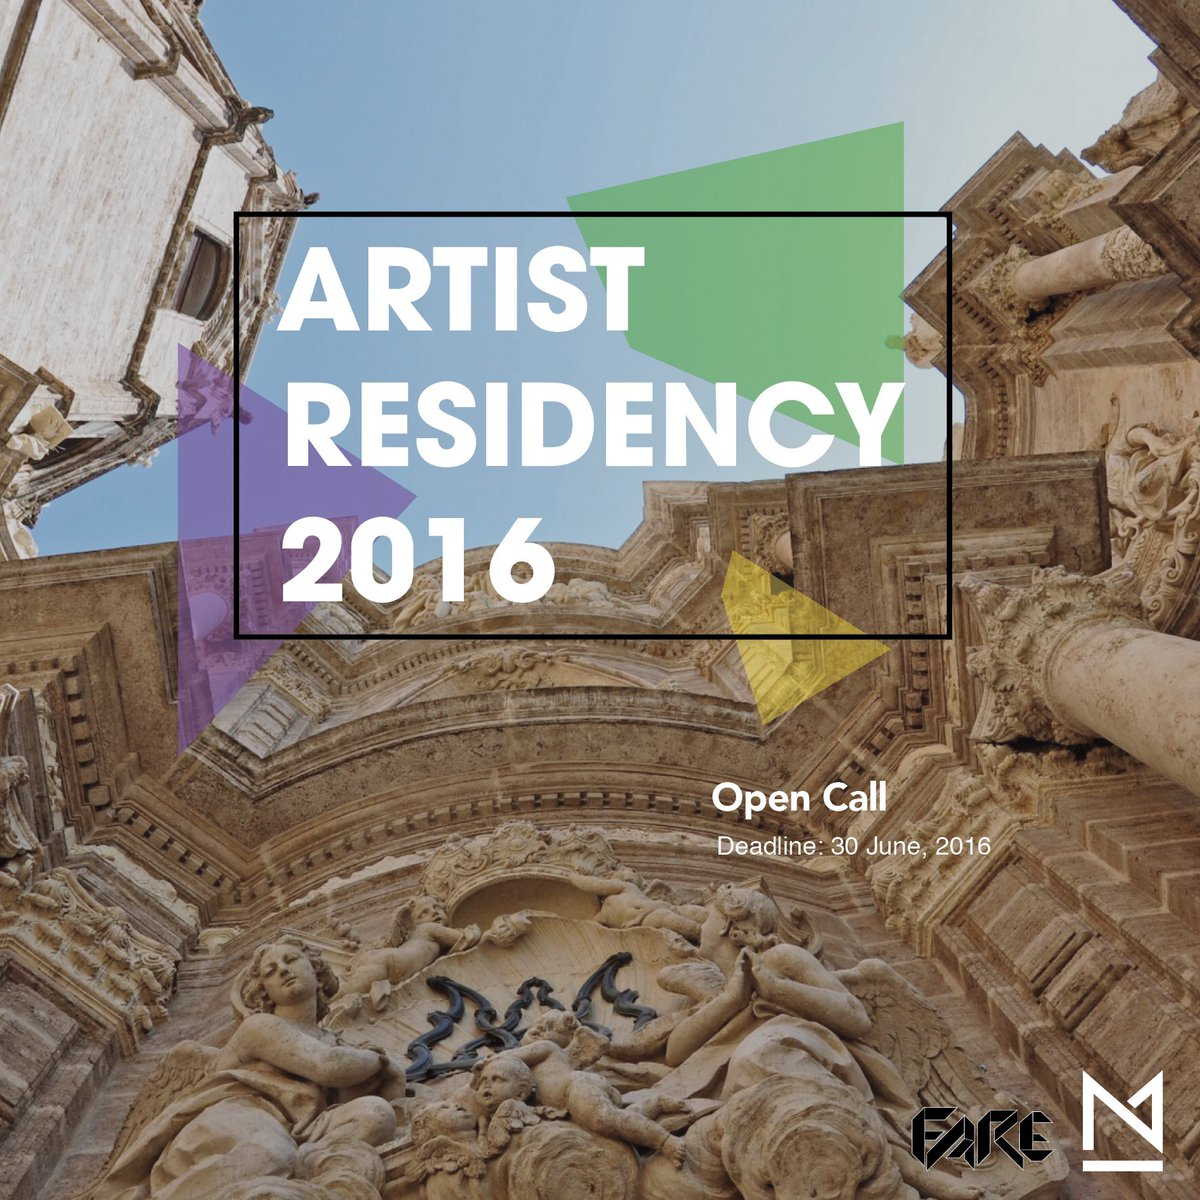 Open Call: Artist Residency 2016 دعوة للمشاركة: برنامج الفنان المقيم 2016 https://t.co/E9vqsJVTcf #marayaartcentre https://t.co/Uq0xXd25Wo